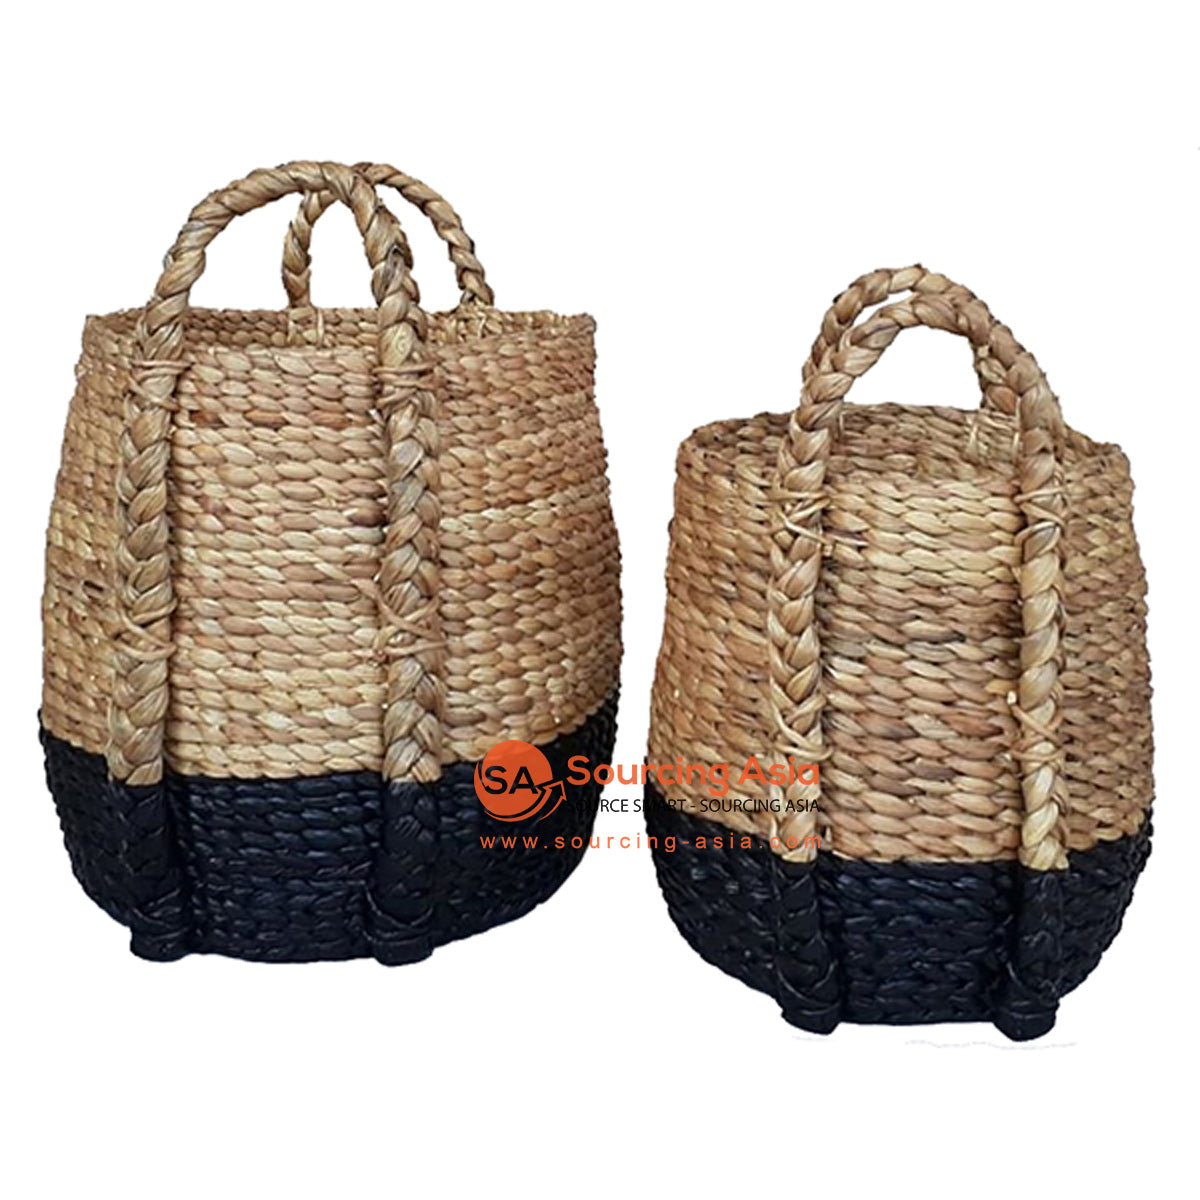 SHL168-1 SET OF TWO BROWN AND BLACK WATER HYACINTH BASKETS